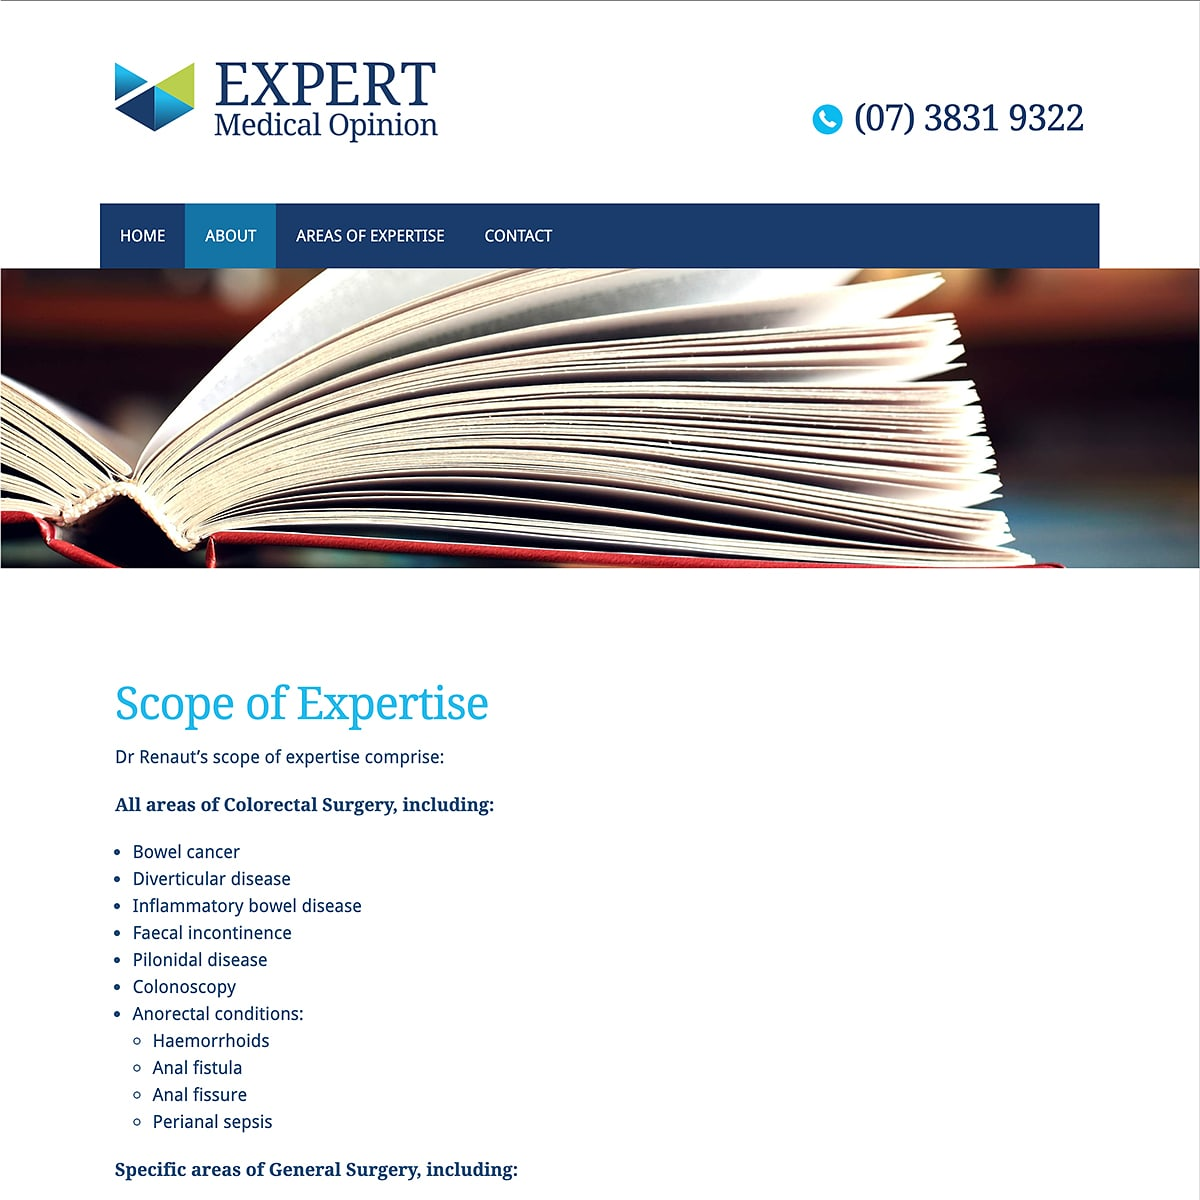 Expert Medical Opinion - Scope of Expertise